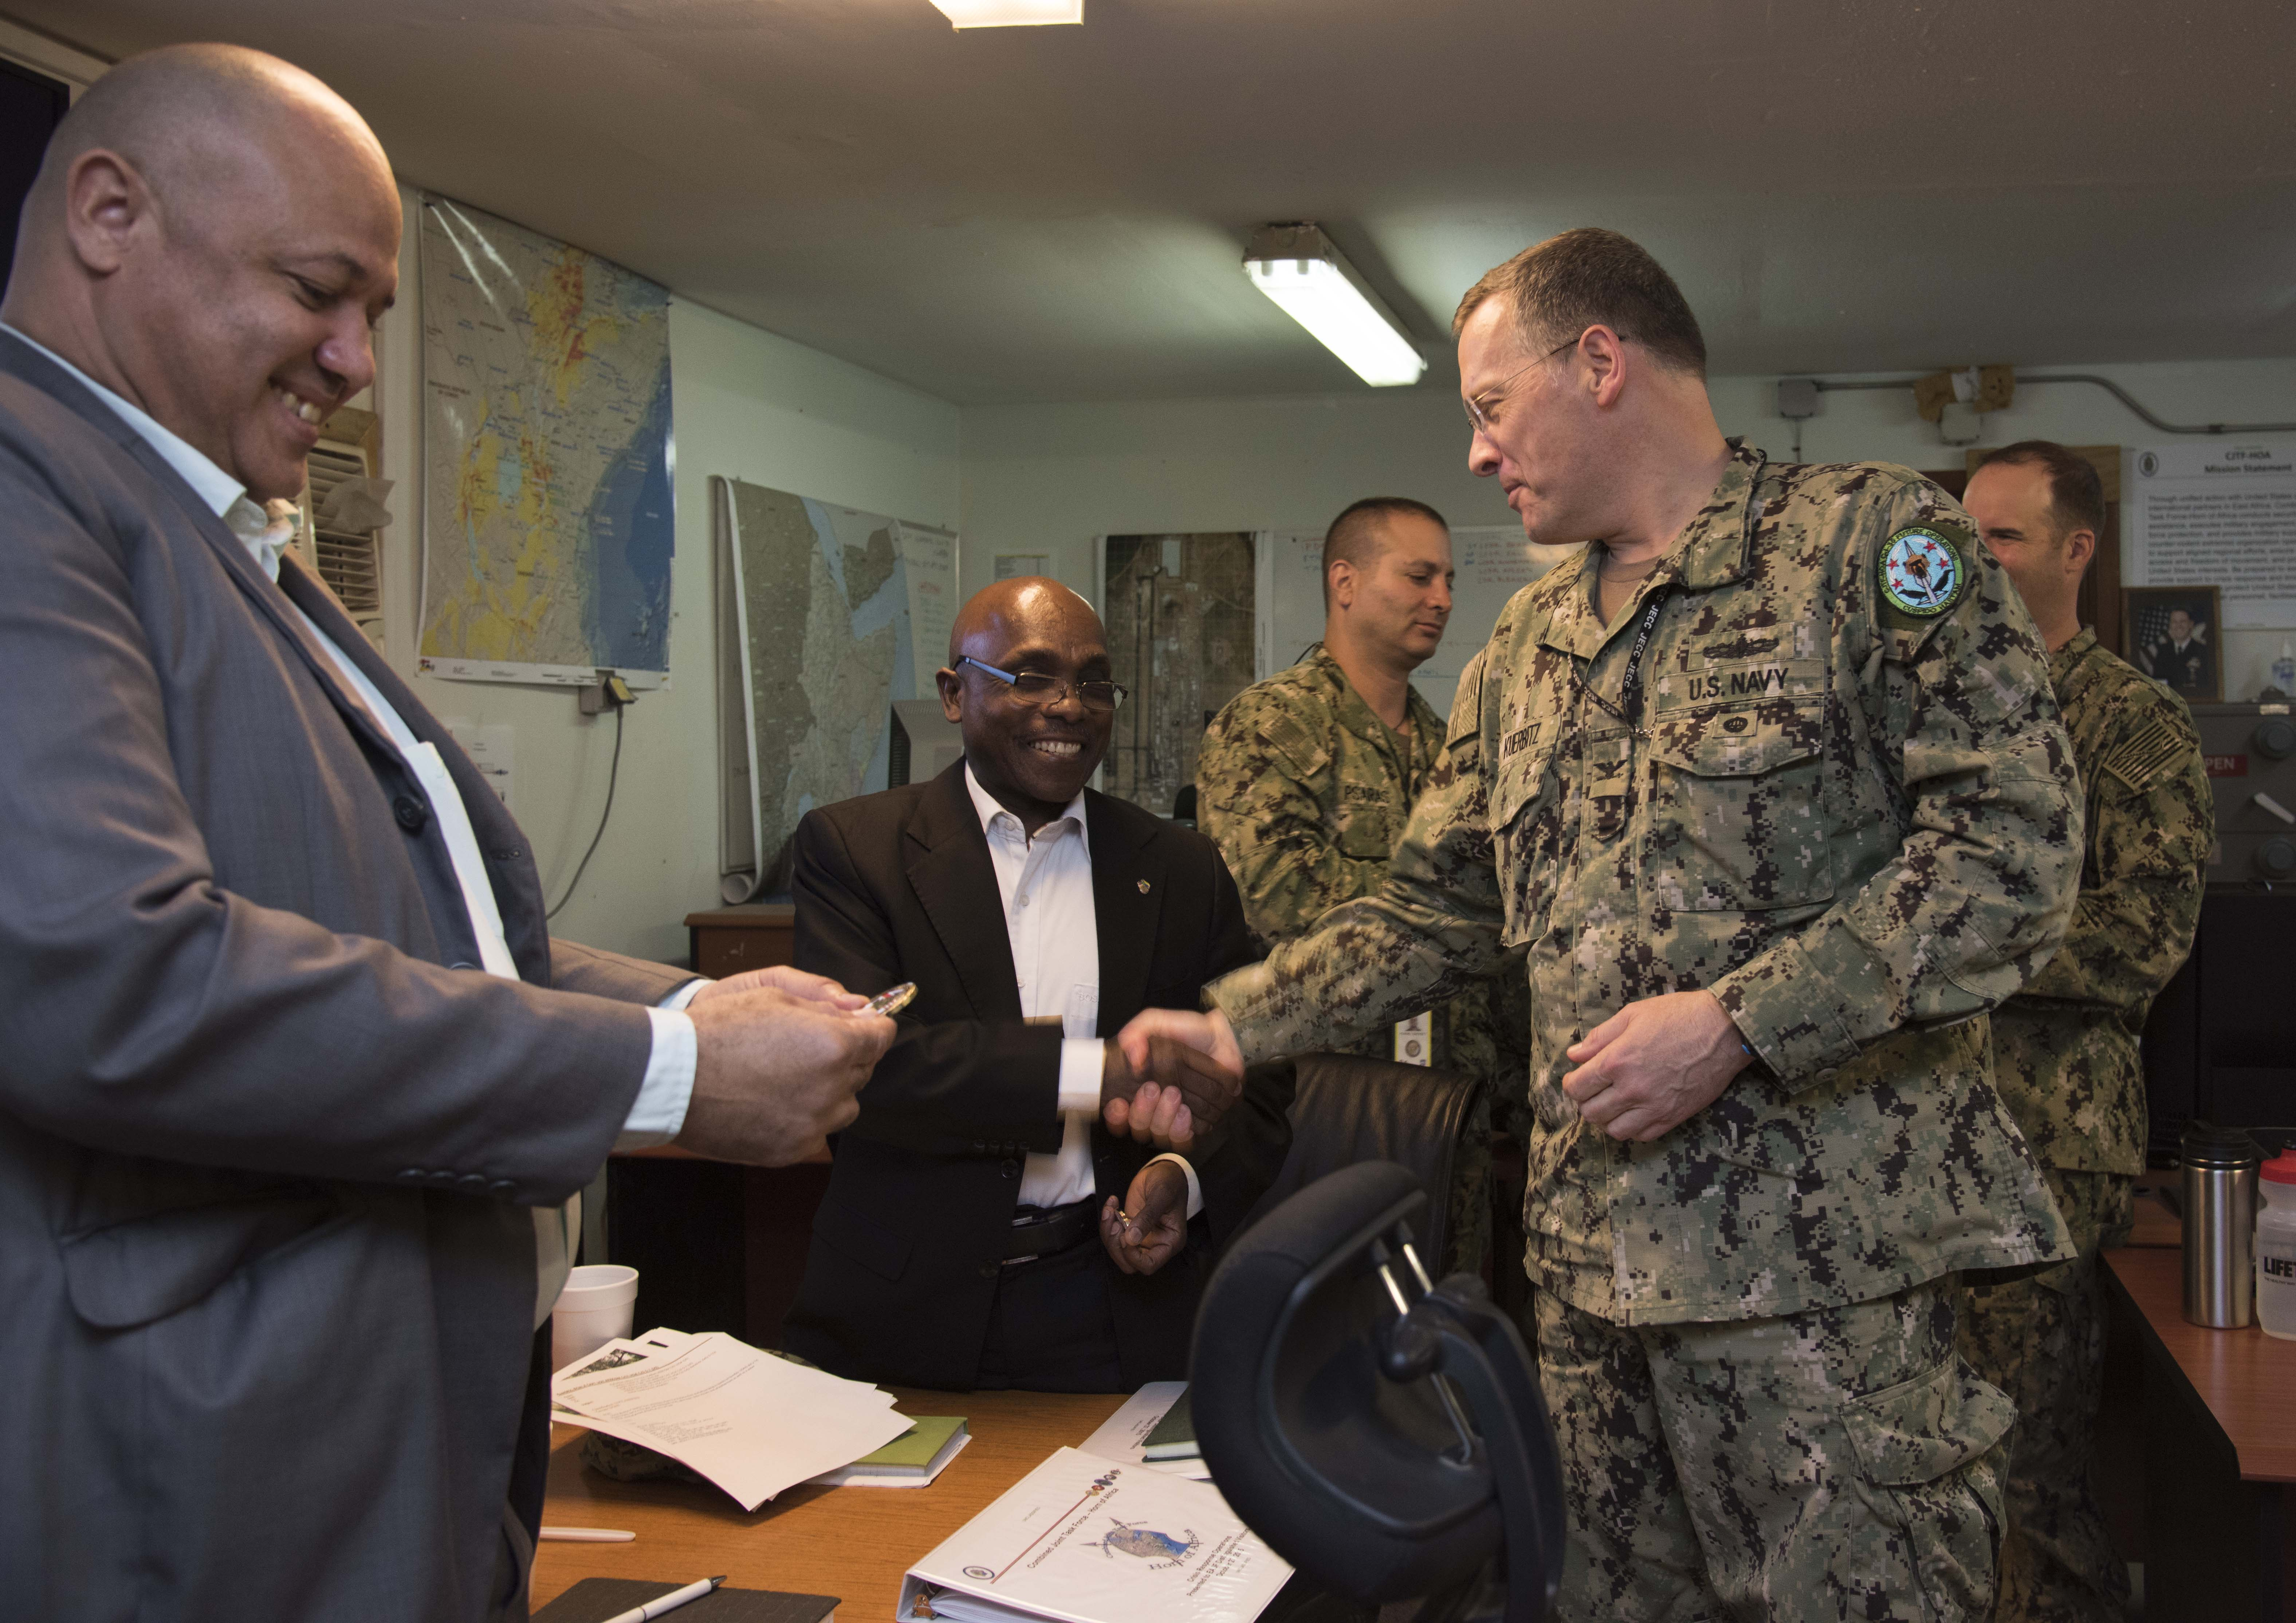 U.S. Navy Capt. Brian Kuerbitz coins Ambassador Issimail Chanfi, Eastern Africa Standby Force (EASF) director, and Benediste Hoareau, EASF head of political affairs, during their tour of Combined Task Force-Horn of Africa Oct. 27, 2015 at Camp Lemonnier, Djibouti. Coins are given as a token of thanks for continued partnership and cooperation. (U.S. Air Force photo by Staff Sgt. Victoria Sneed)